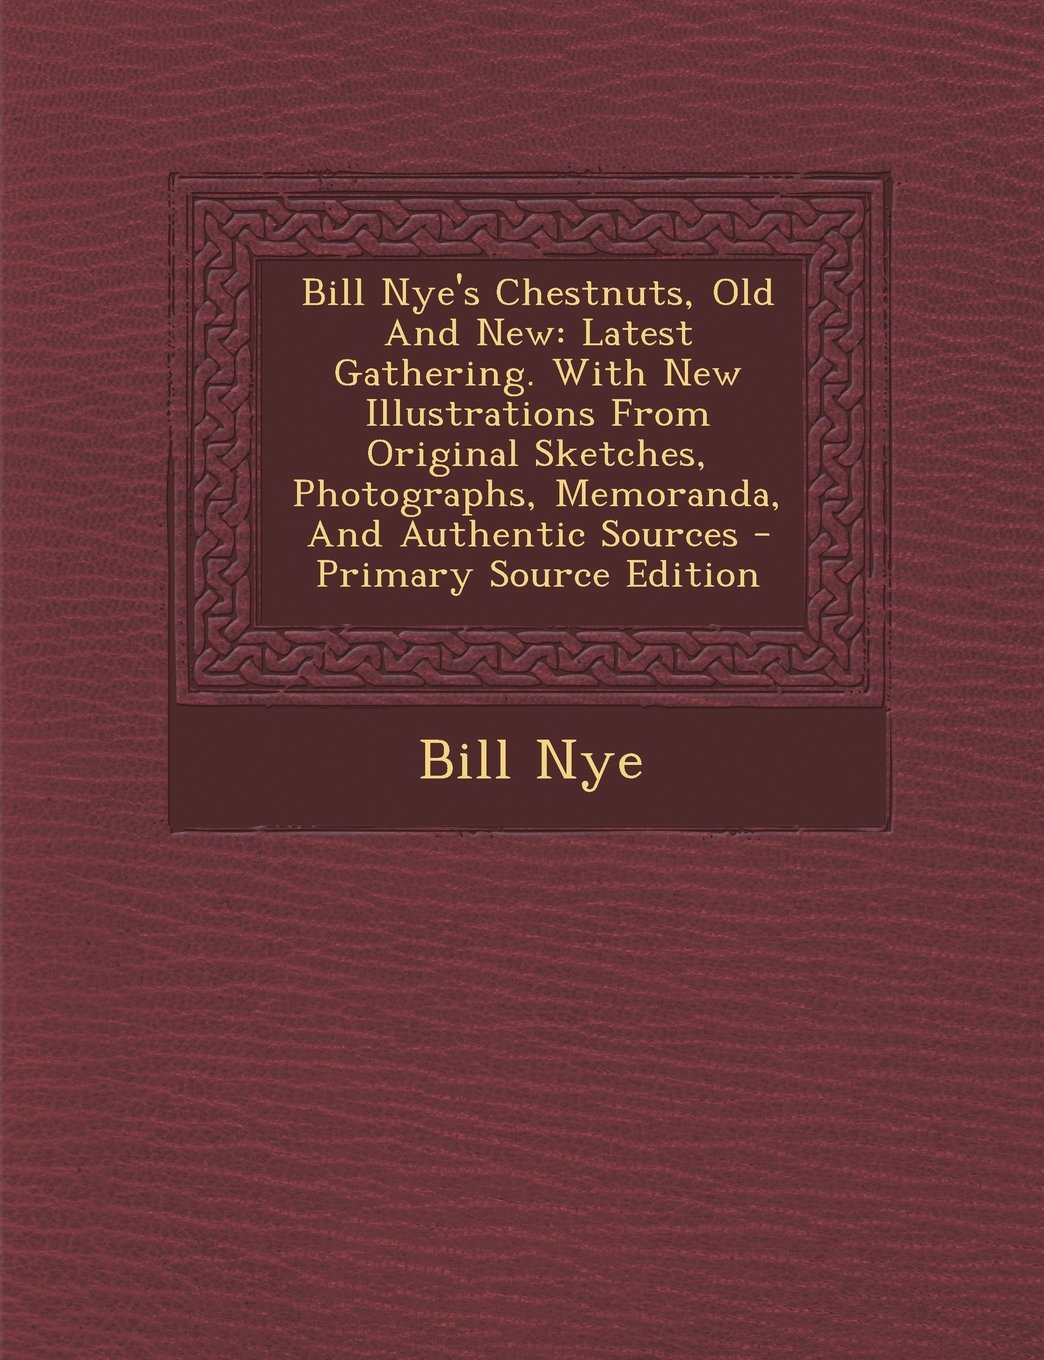 Download Bill Nye's Chestnuts, Old And New: Latest Gathering. With New Illustrations From Original Sketches, Photographs, Memoranda, And Authentic Sources - Primary Source Edition ebook